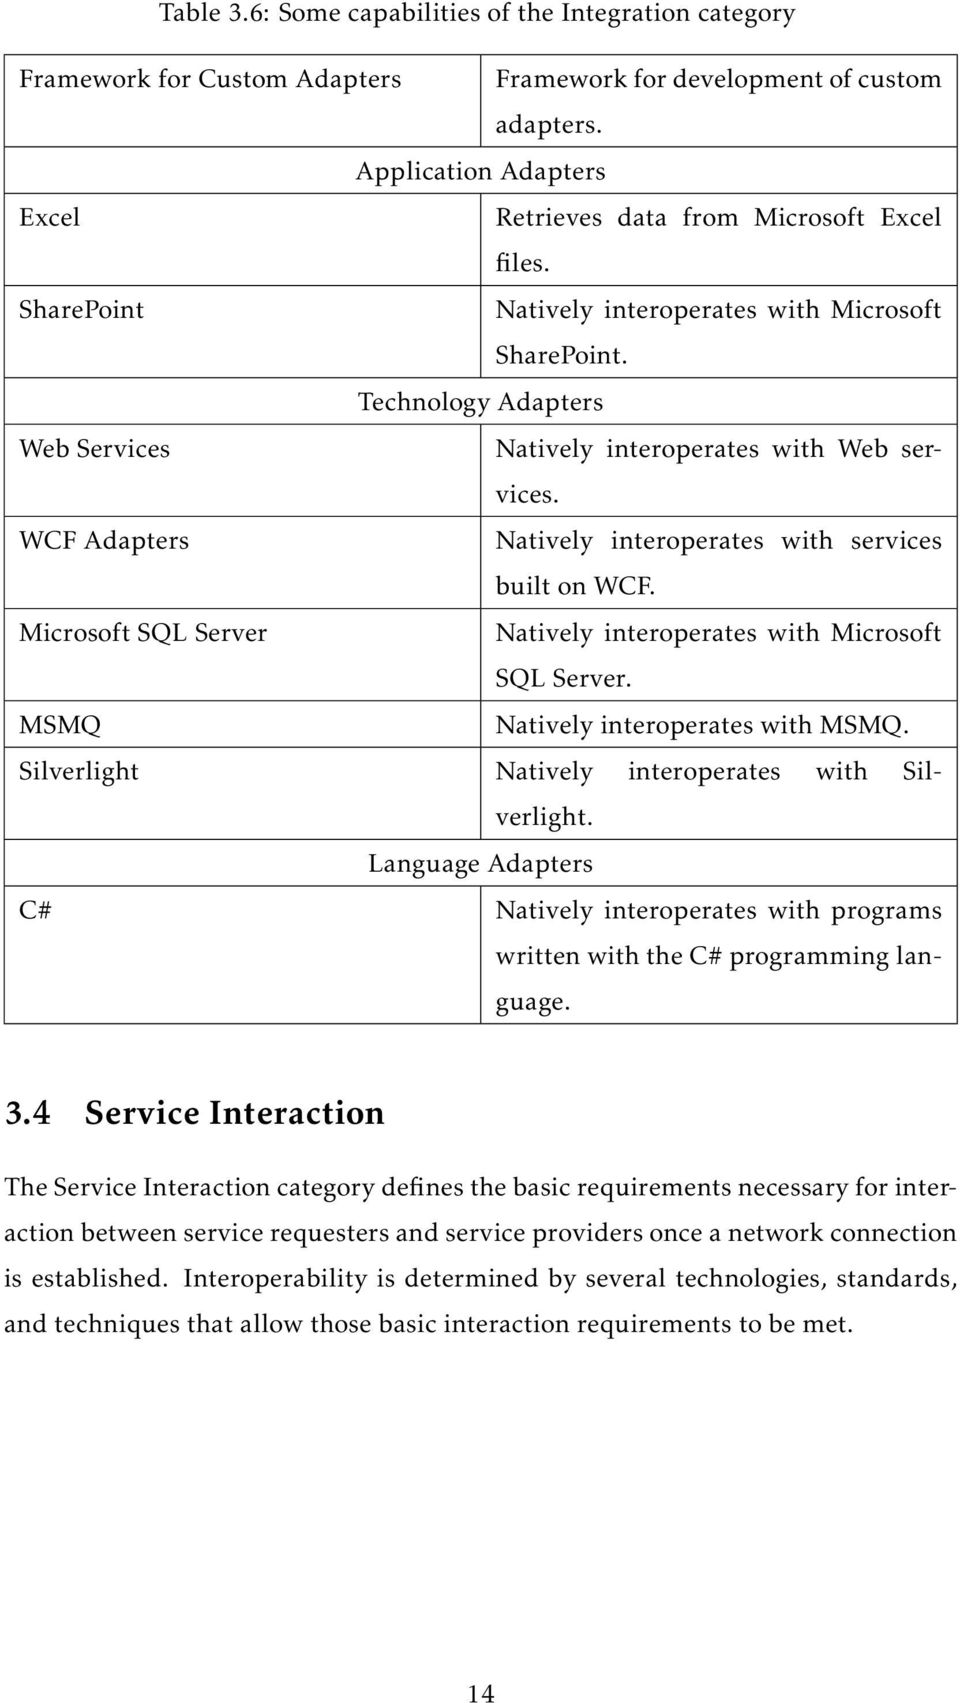 Technology Adapters Web Services Natively interoperates with Web services. WCF Adapters Natively interoperates with services built on WCF.